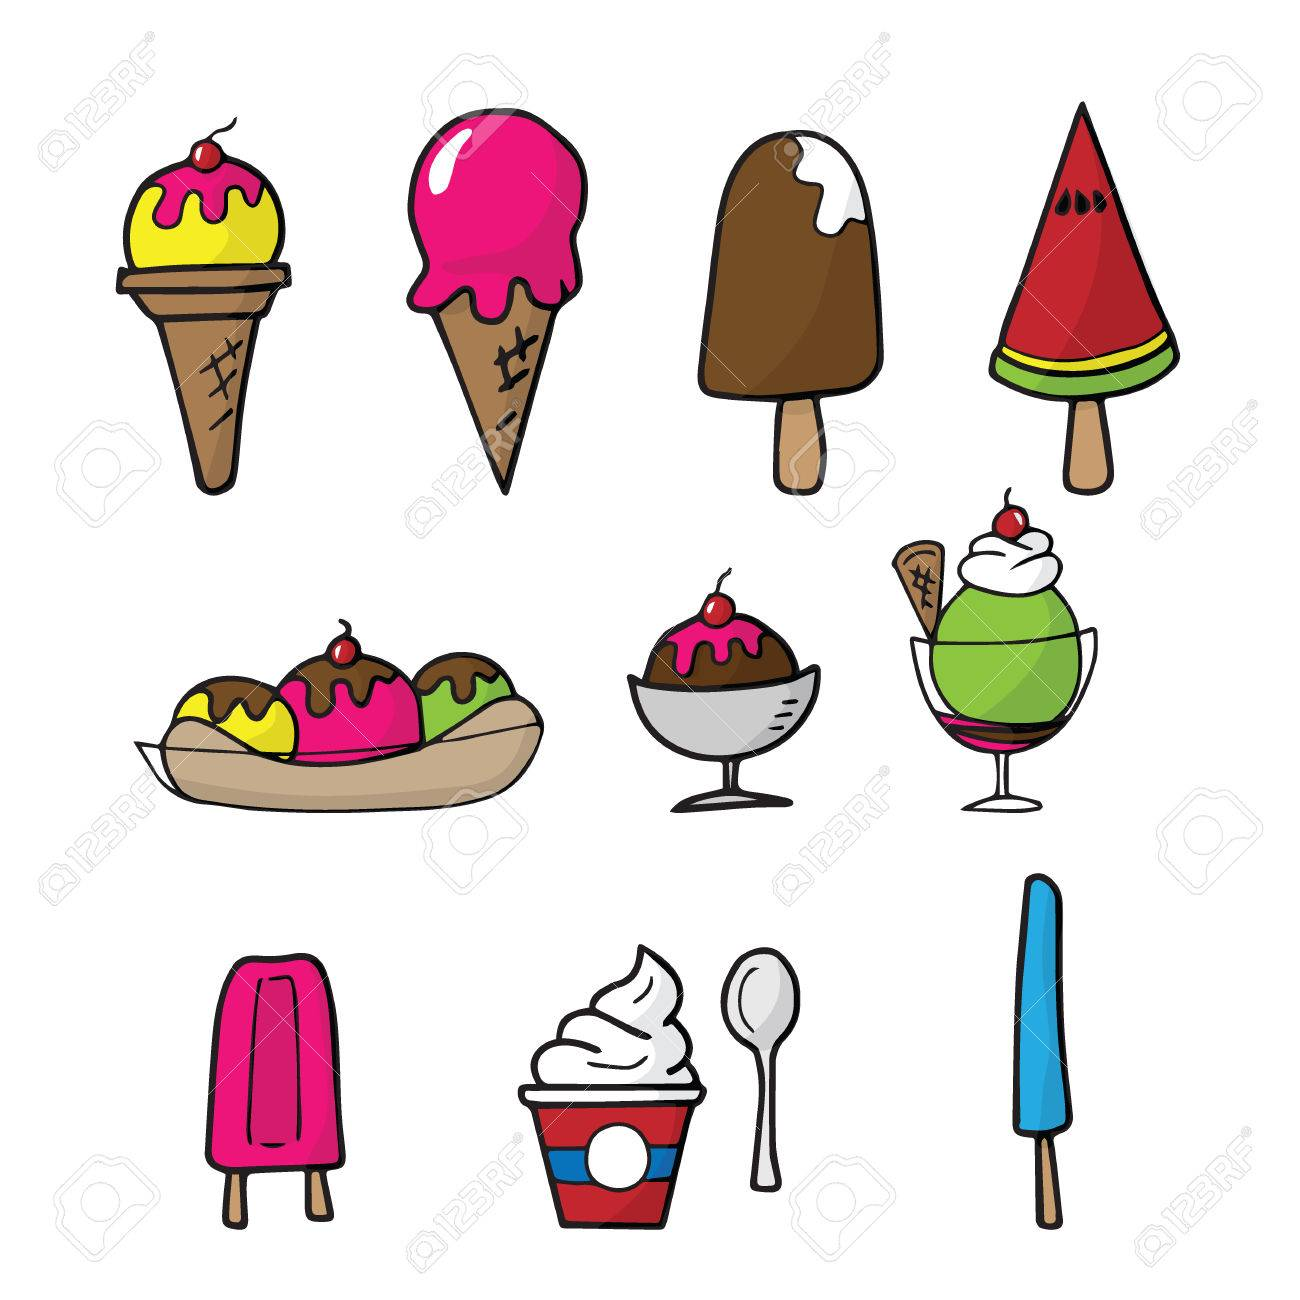 Ice Cream Cartoon Drawing Icons Set Royalty Free Cliparts Vectors